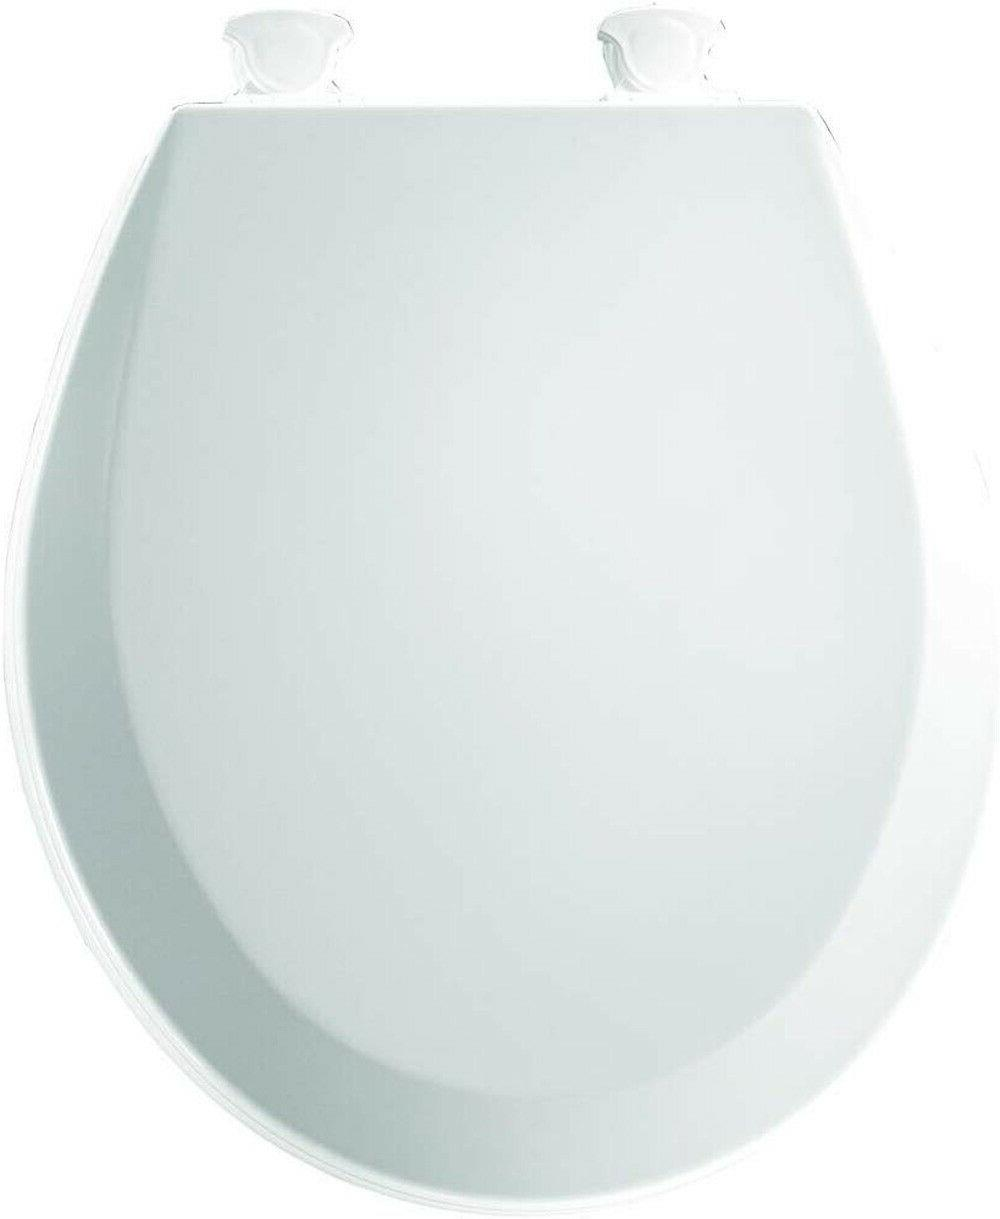 BEMIS 000 Toilet Seat & Hinges, ROUND, Durable